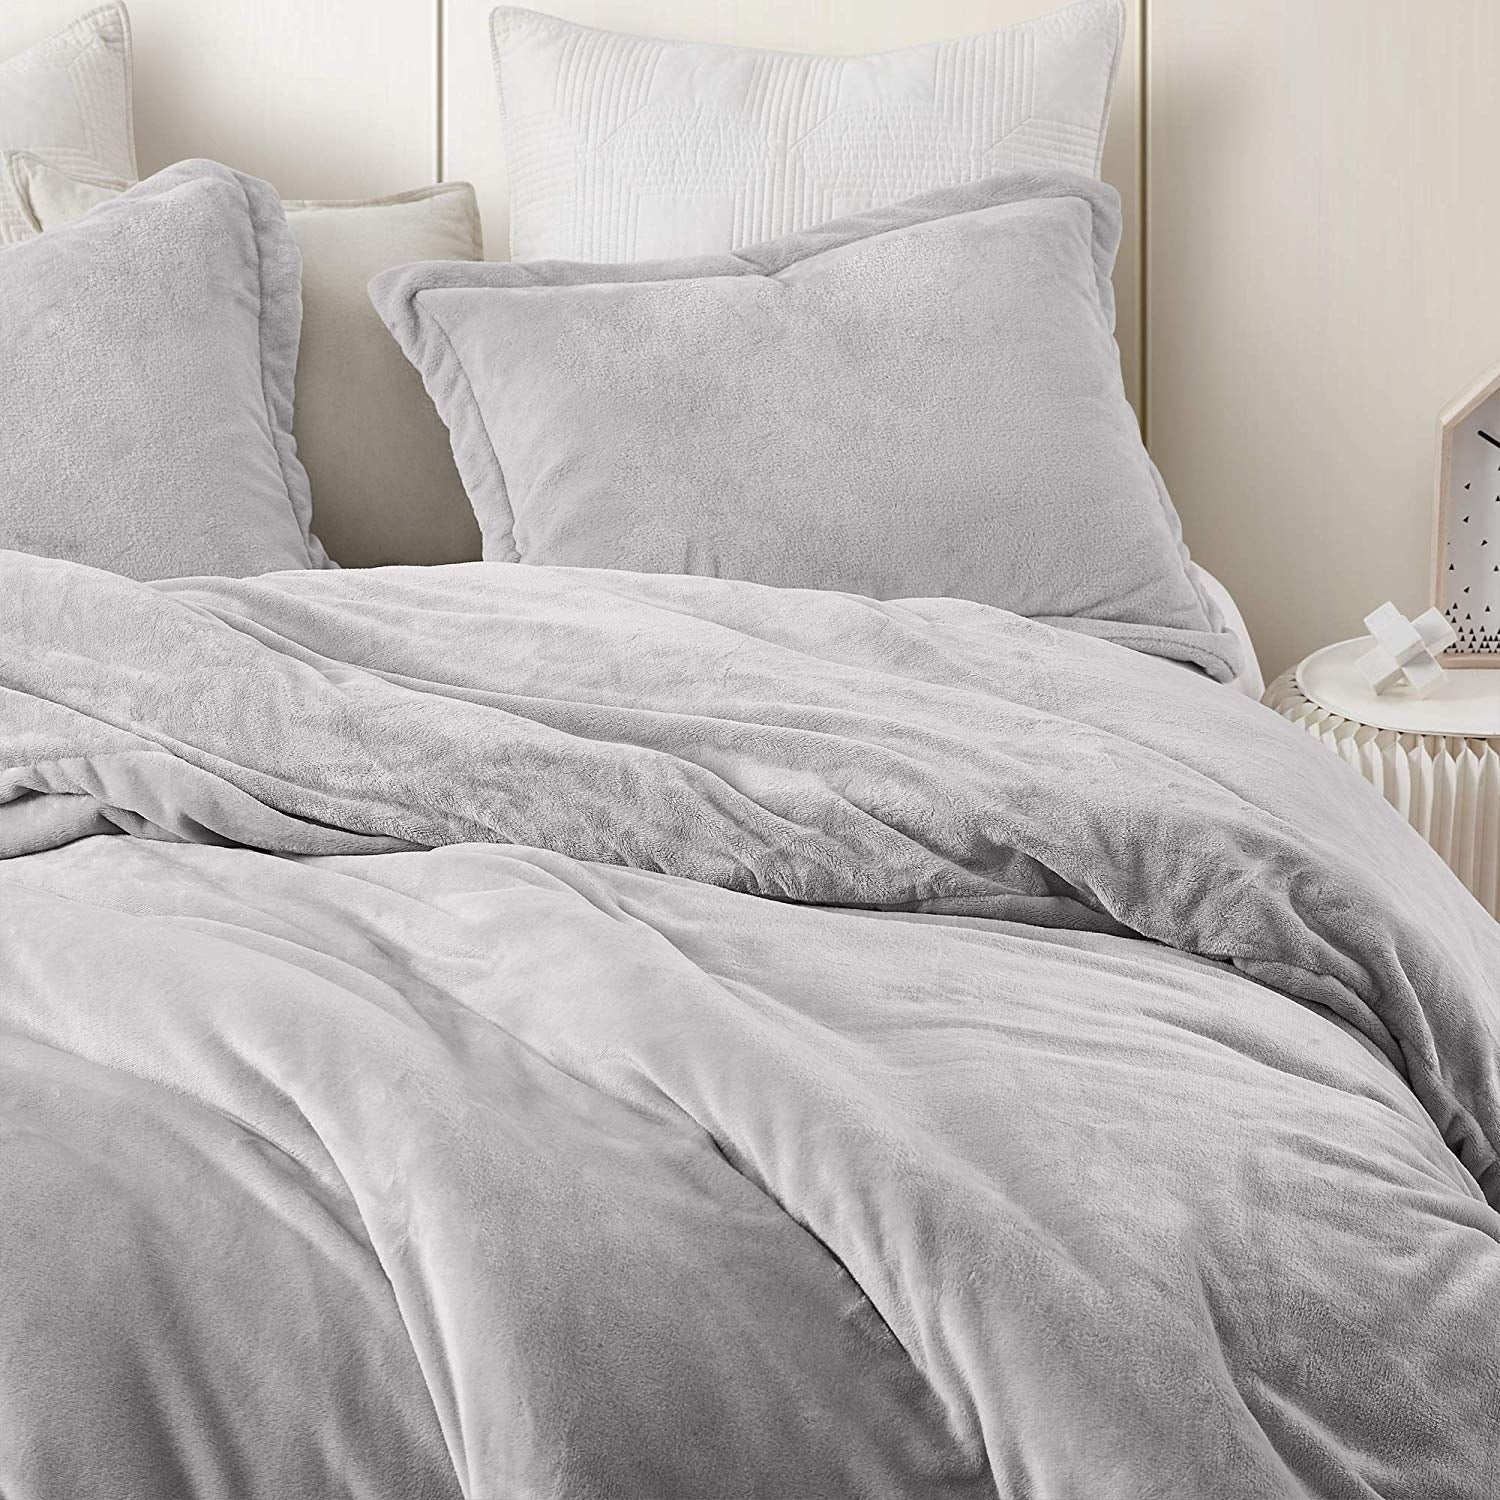 Coma Inducer Oversized Duvet Cover Wait Oh What Tundra Gray Overstock 29003866